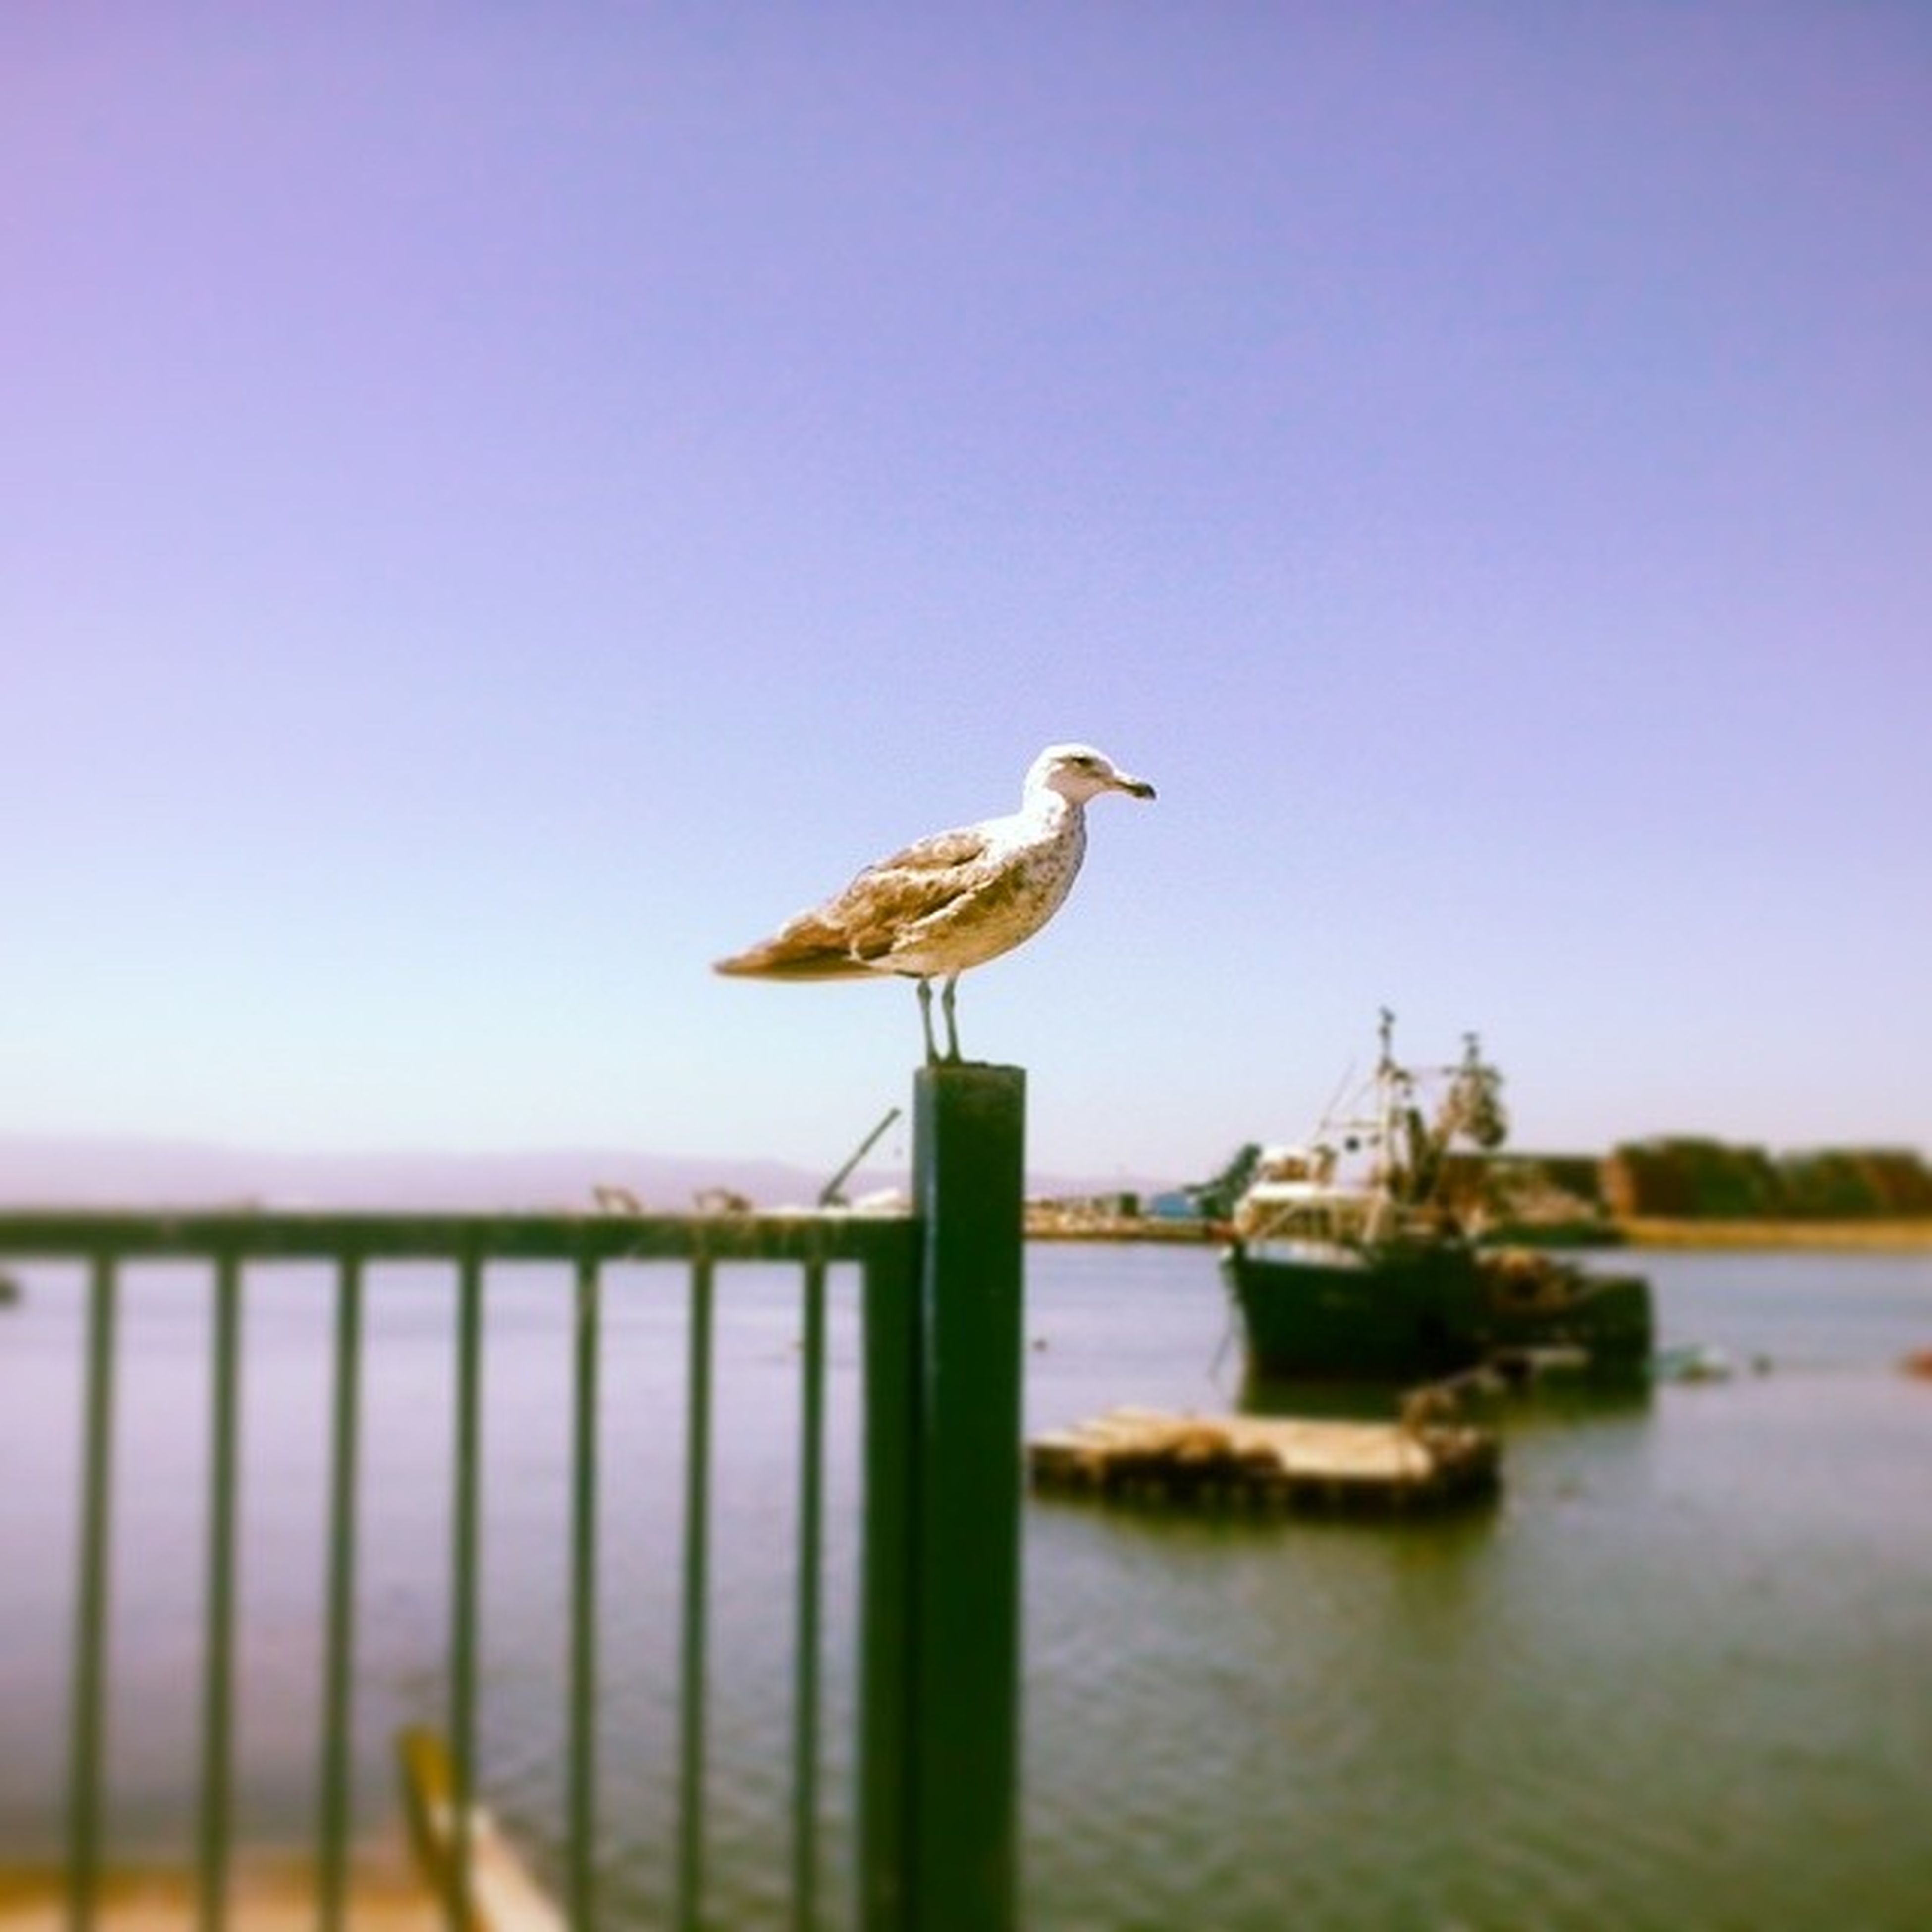 bird, animal themes, animals in the wild, one animal, wildlife, seagull, water, clear sky, perching, sea, copy space, nature, side view, focus on foreground, full length, railing, day, outdoors, beak, lake